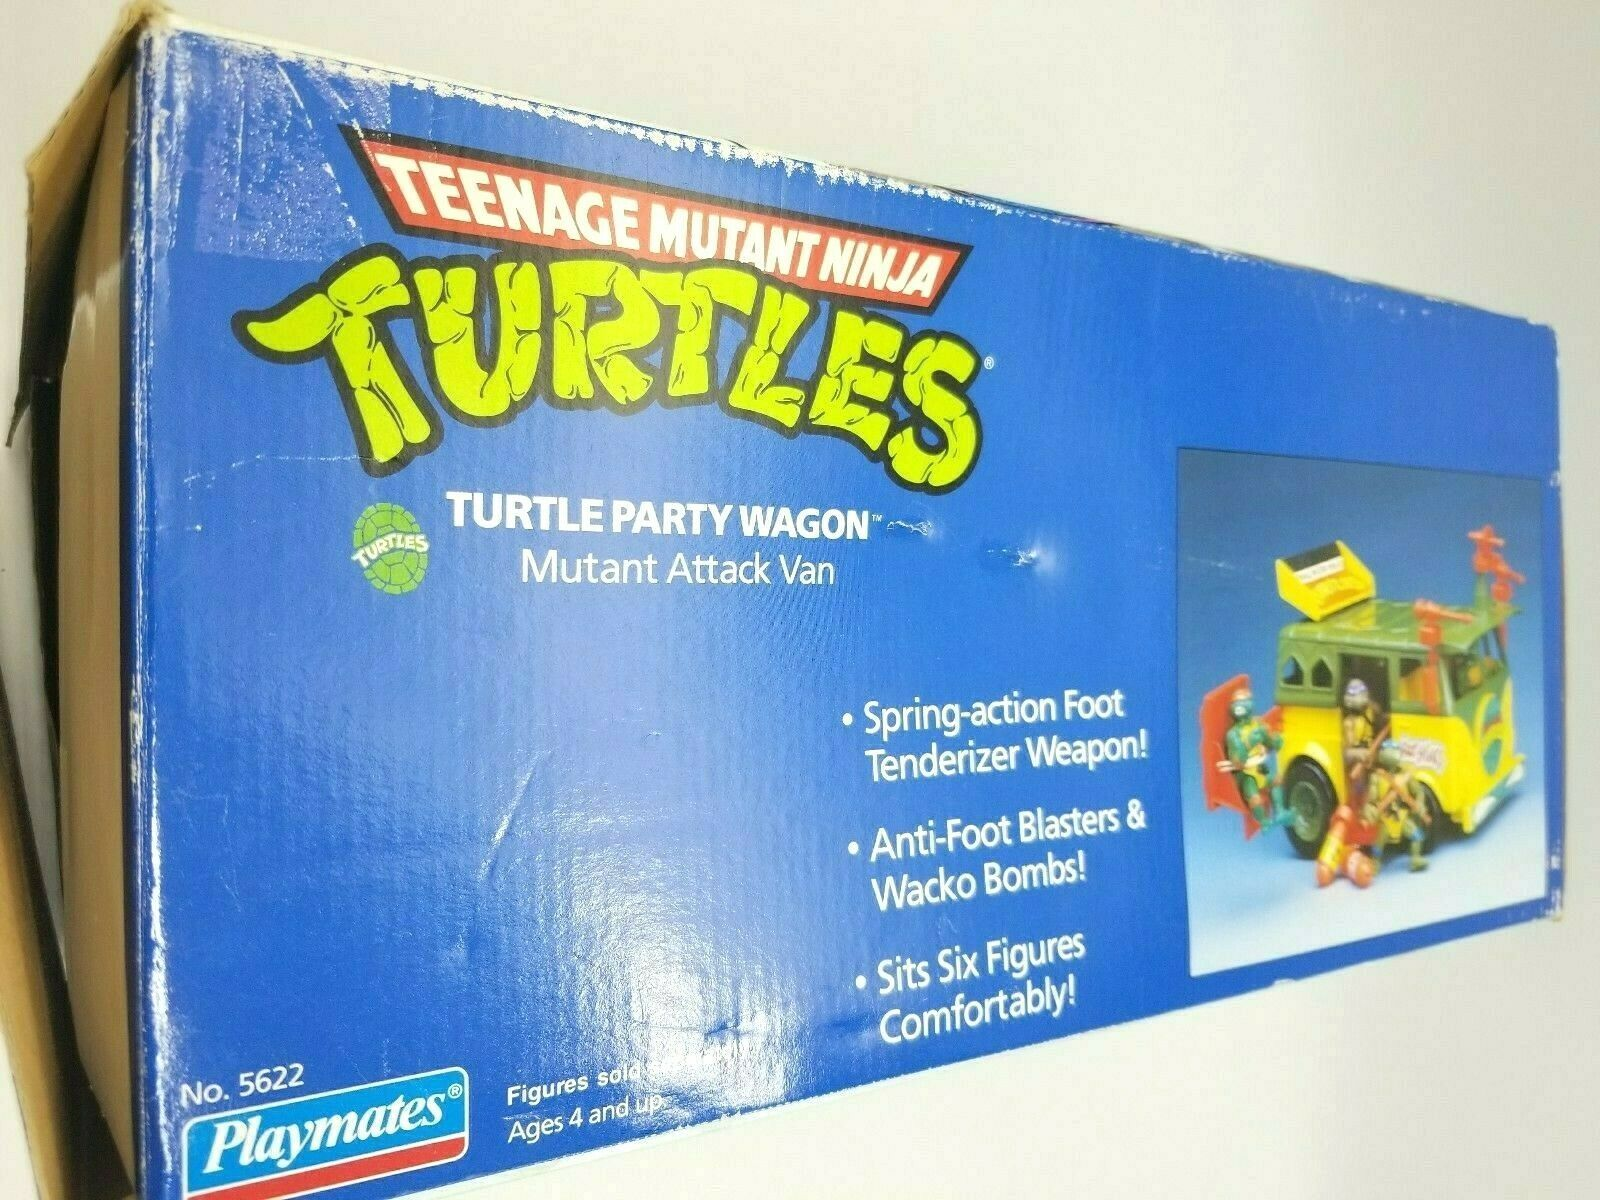 Teenage Mutant Ninja Turtles 1989 Party Wagon Mutant Attack Van In Damaged Box